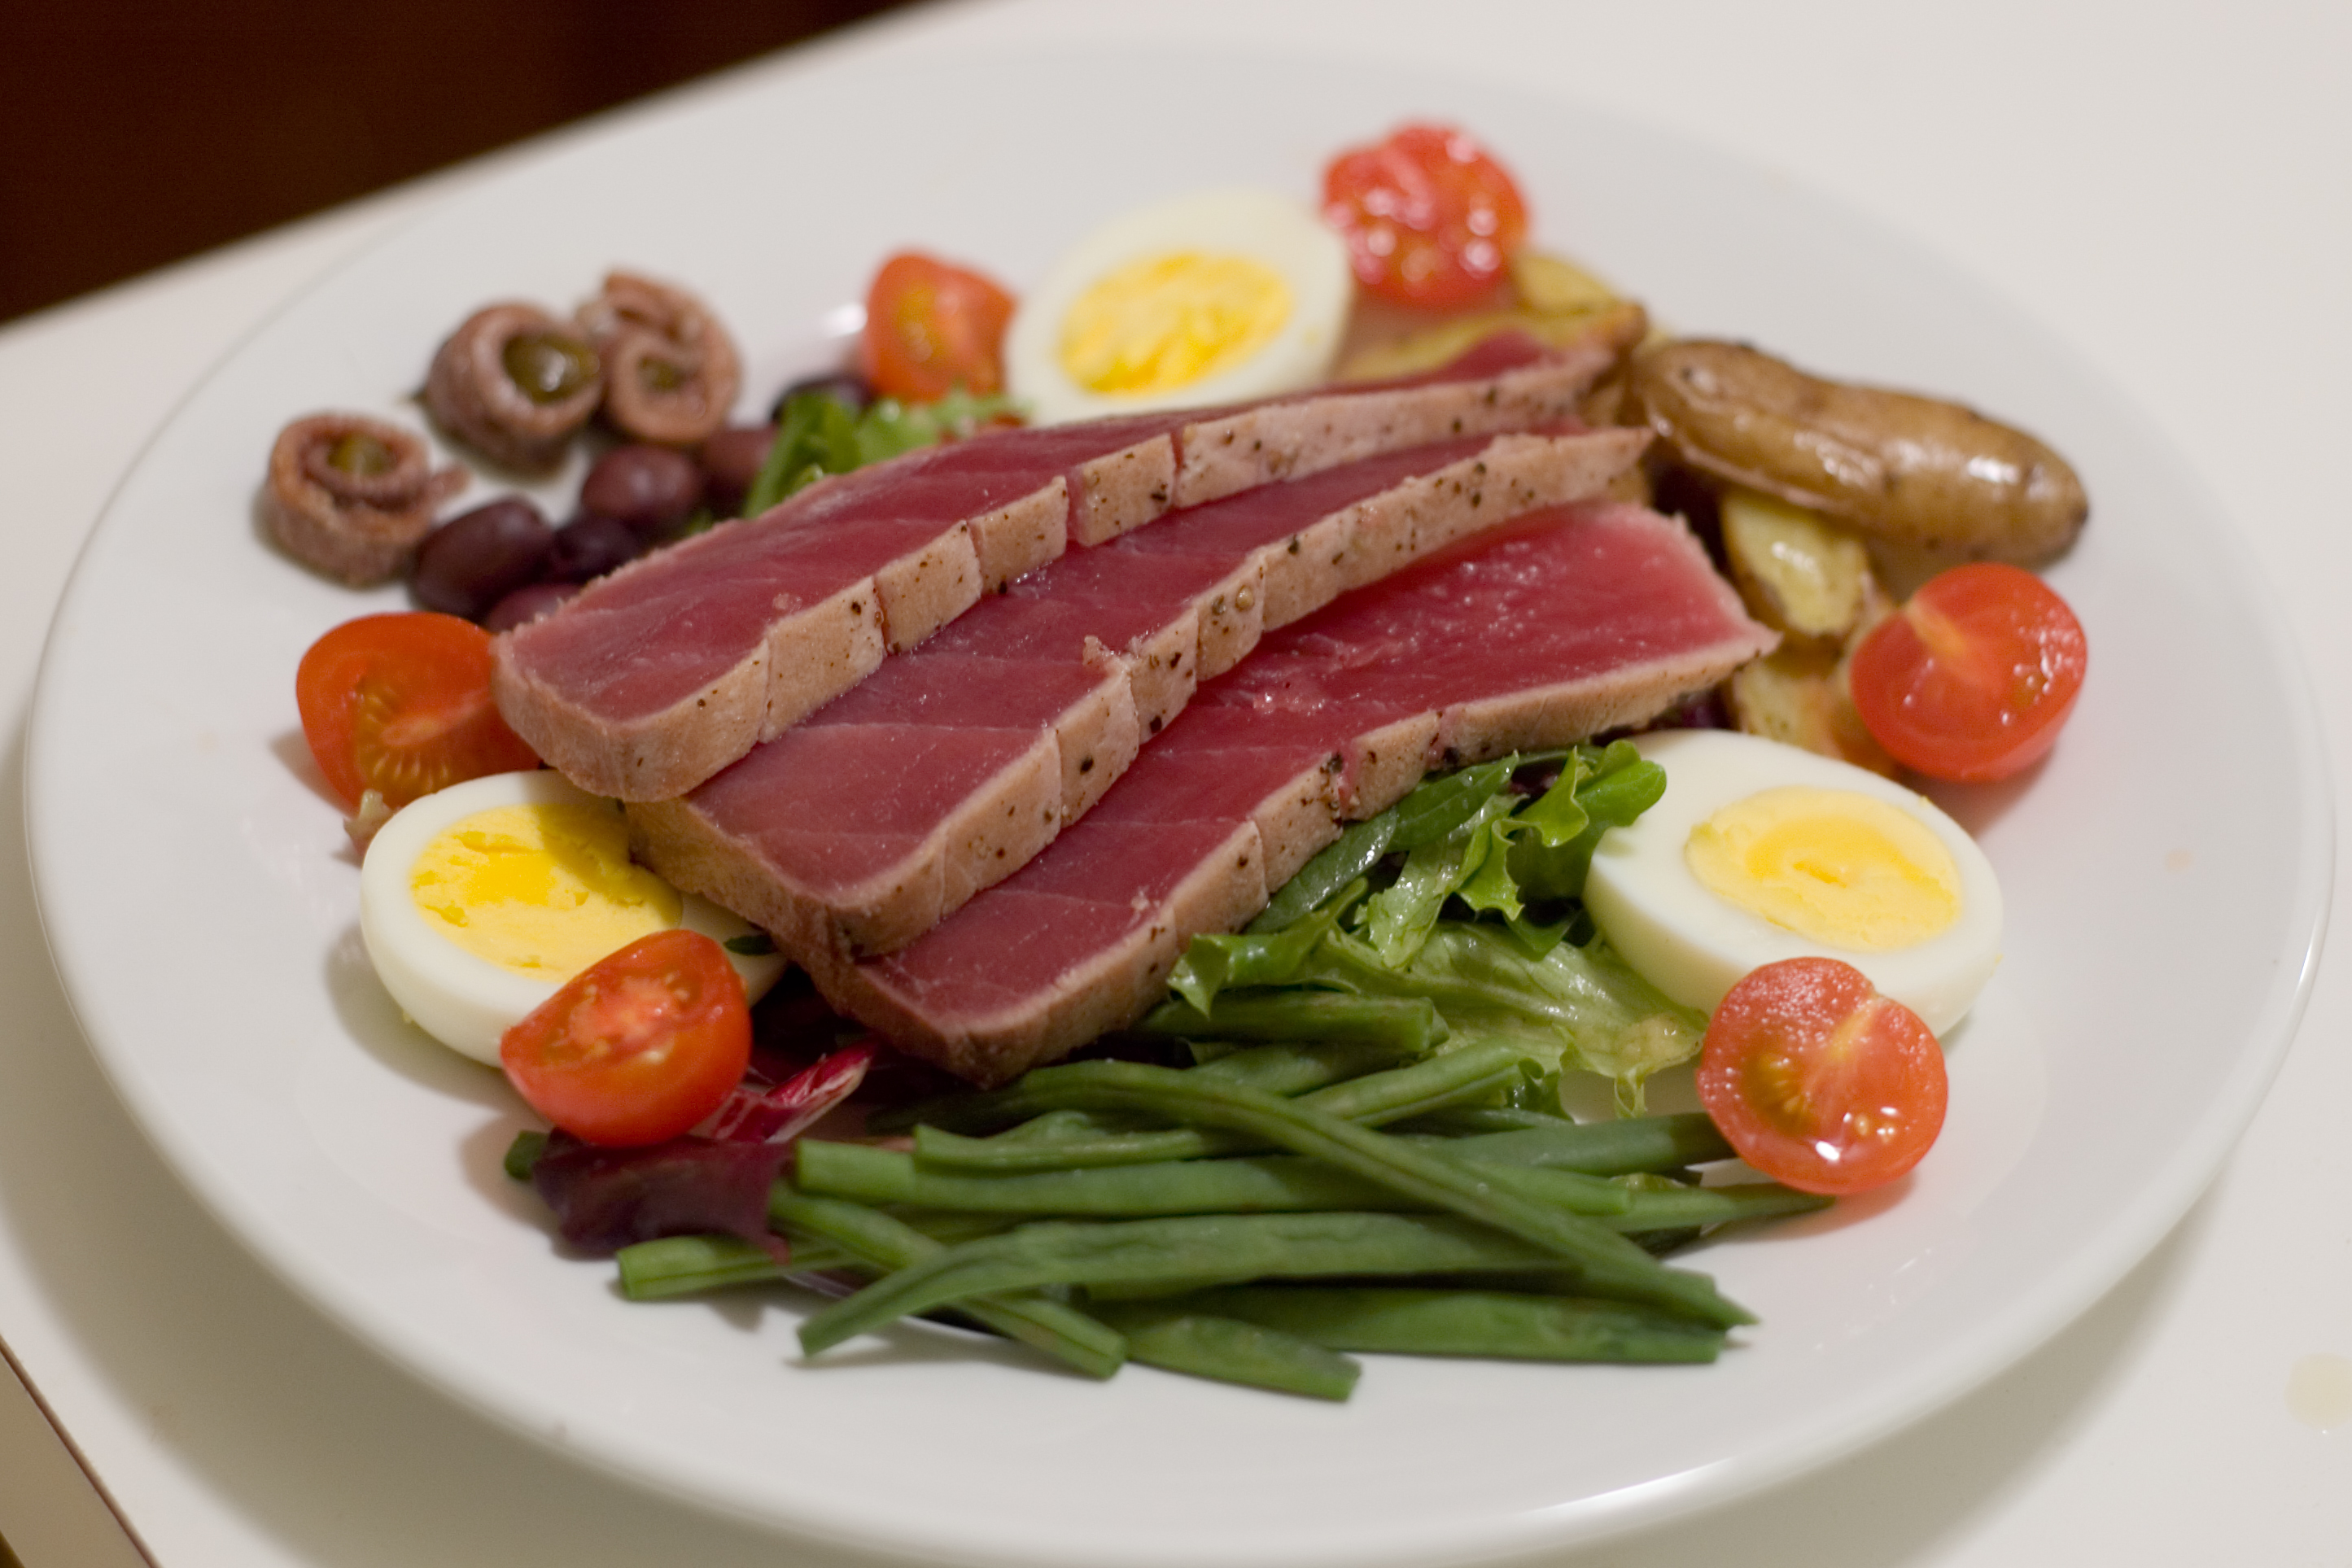 http://upload.wikimedia.org/wikipedia/commons/b/b0/Salade_nicoise.jpg